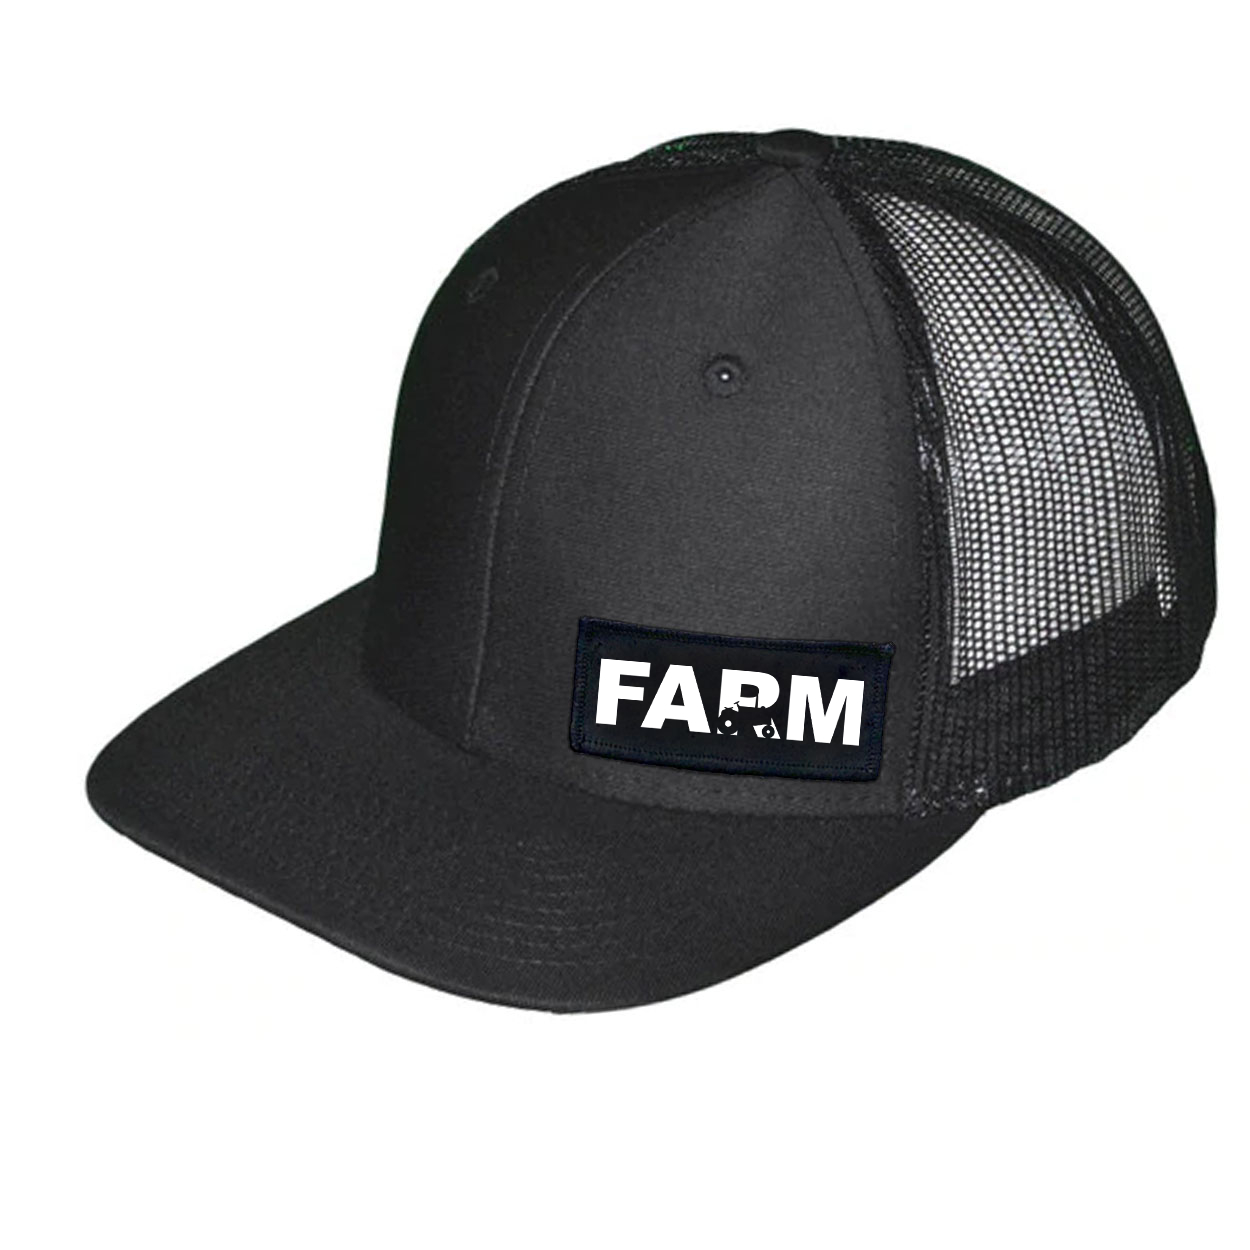 Farm Tractor Logo Night Out Woven Patch Snapback Trucker Hat Black (White Logo)